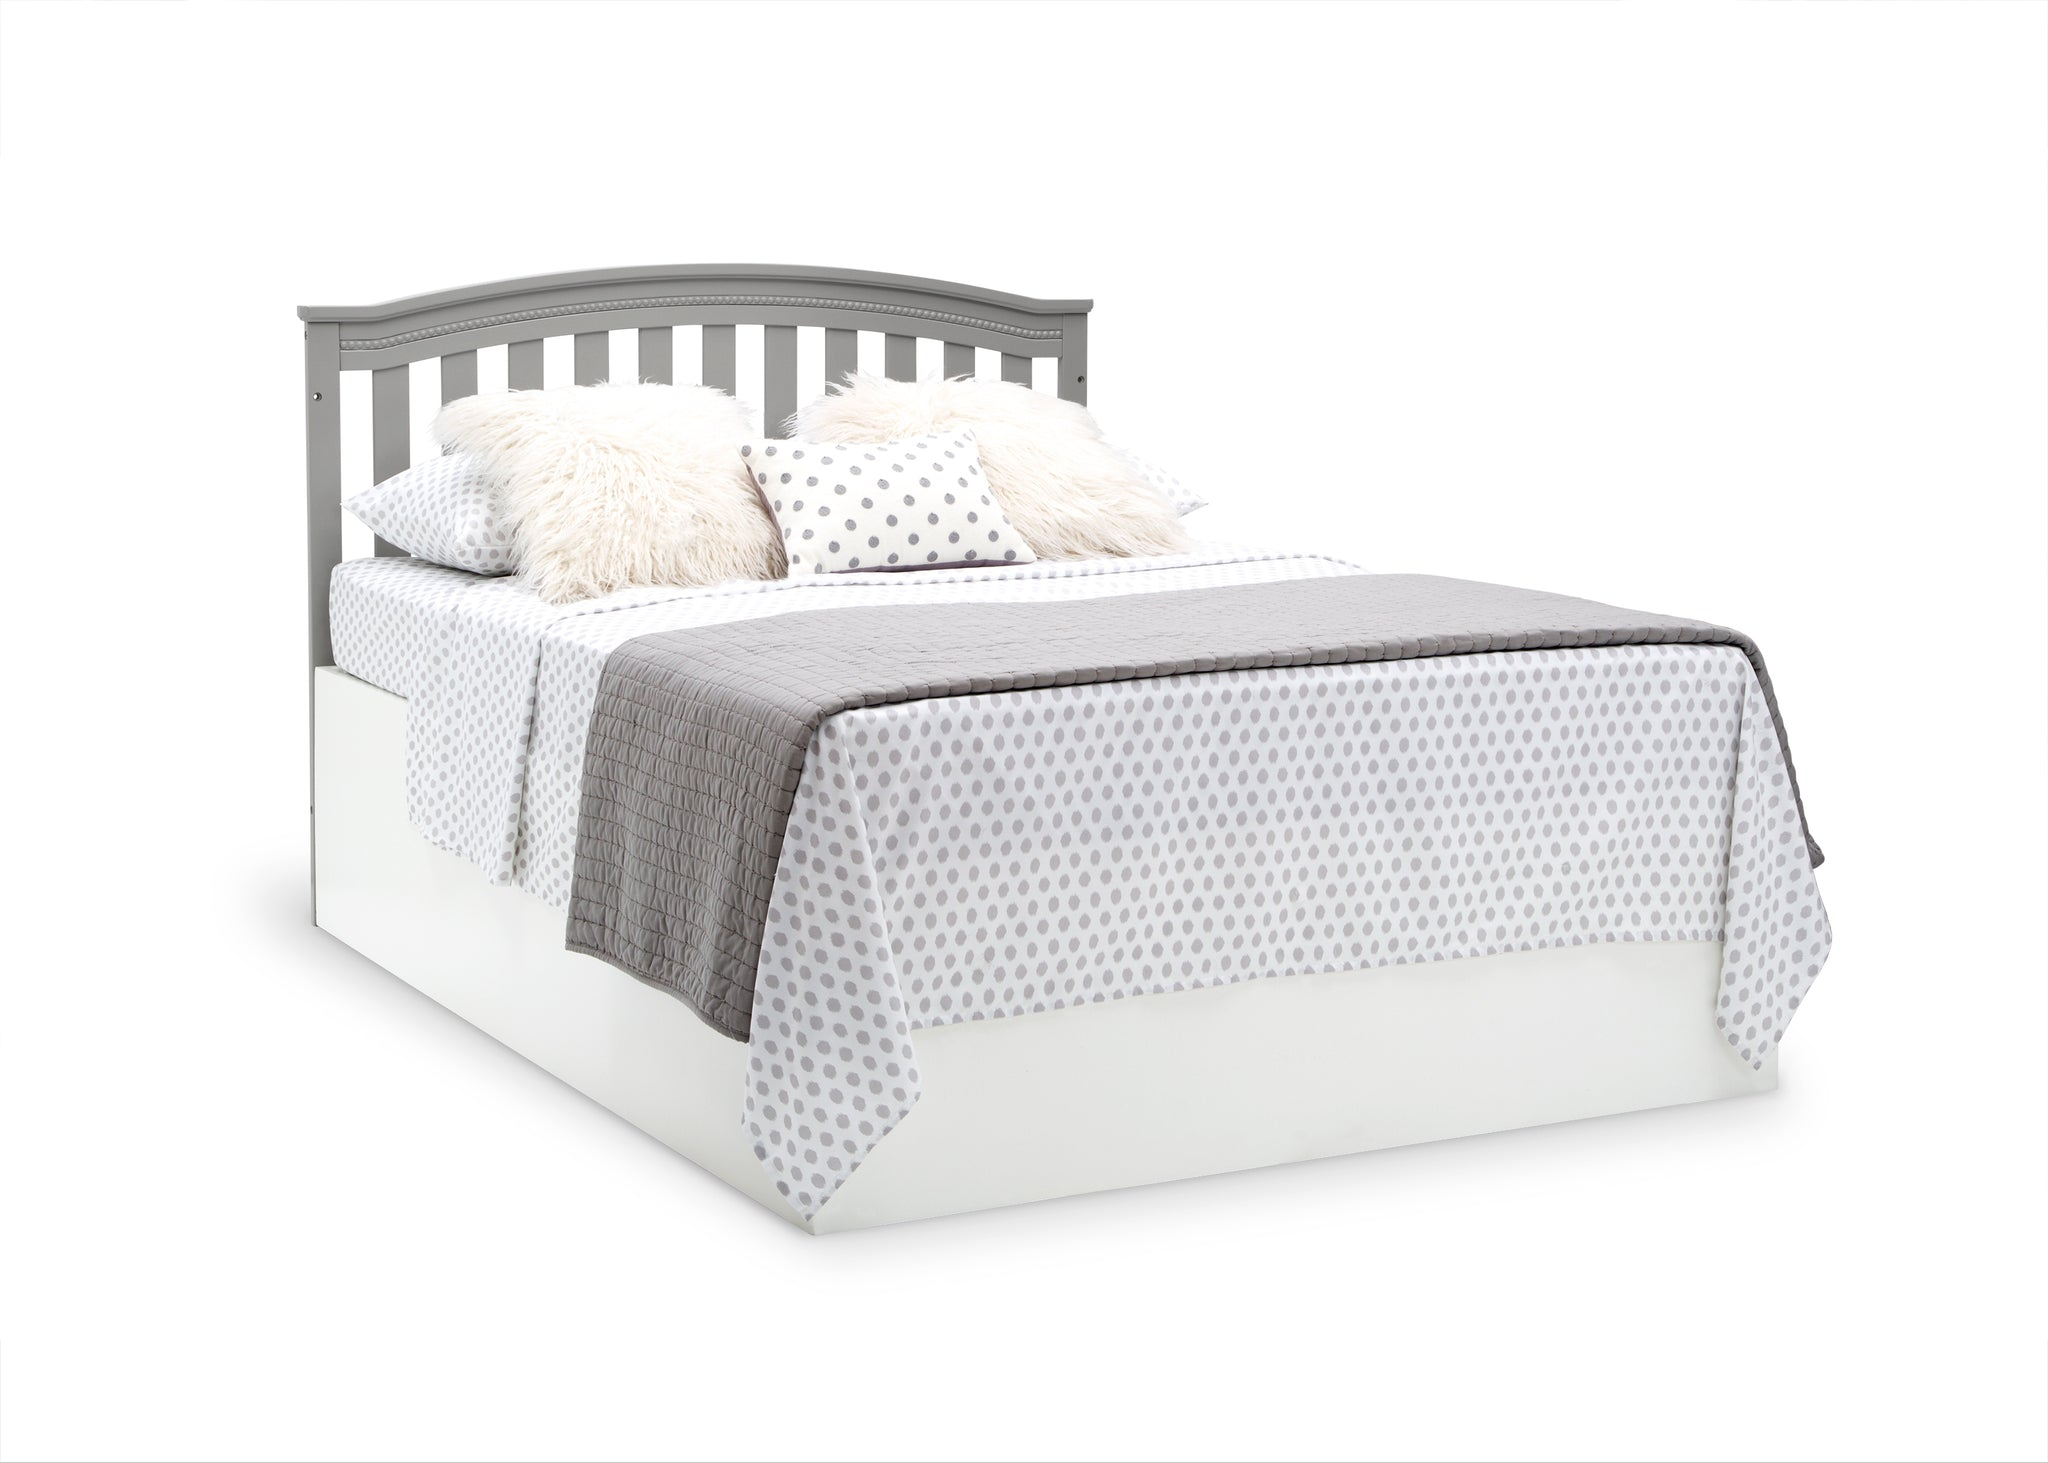 Delta Children Grey (026) Waverly 6-in-1 Convertible Crib, Right Full Bed with Headboard Silo View